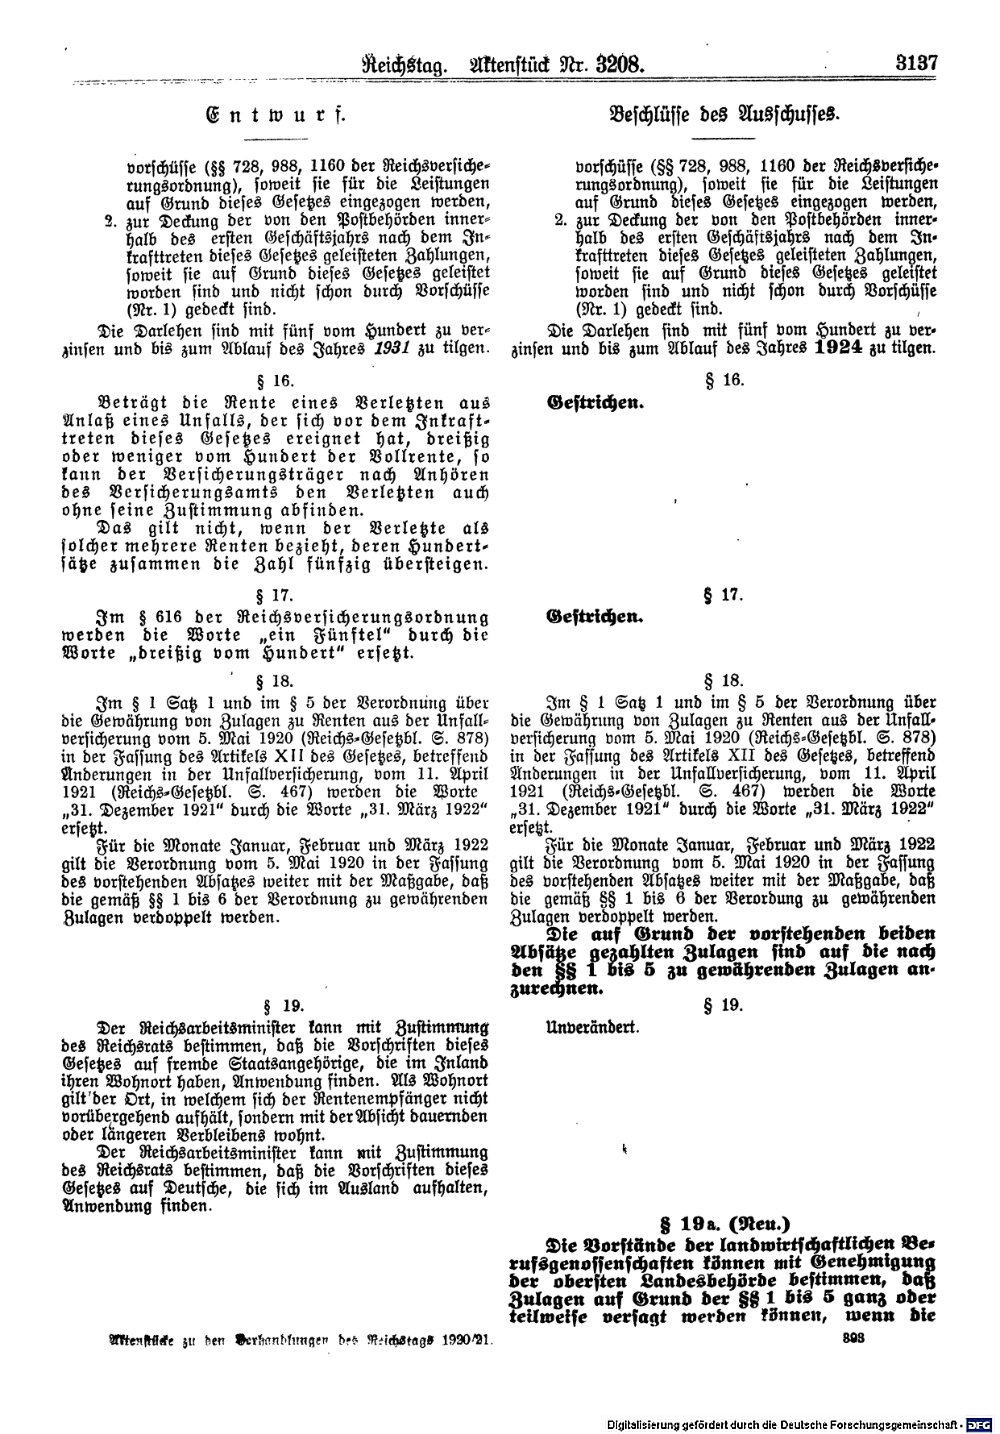 Scan of page 3137